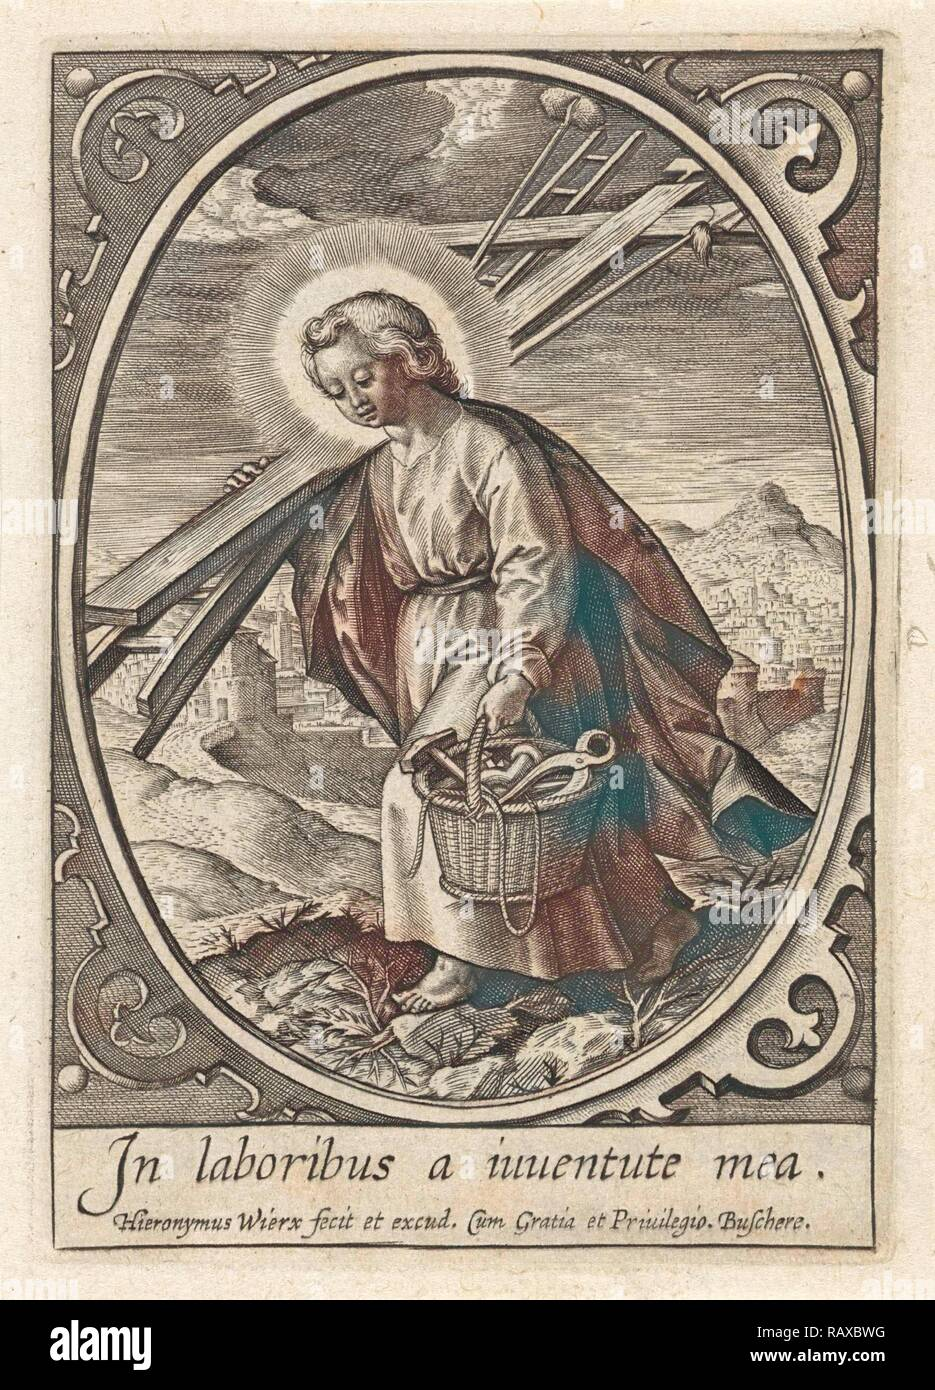 Christ child carries the passion equipment, Hieronymus Wierix, 1563 - before 1619. Reimagined by Gibon. Classic art reimagined Stock Photo